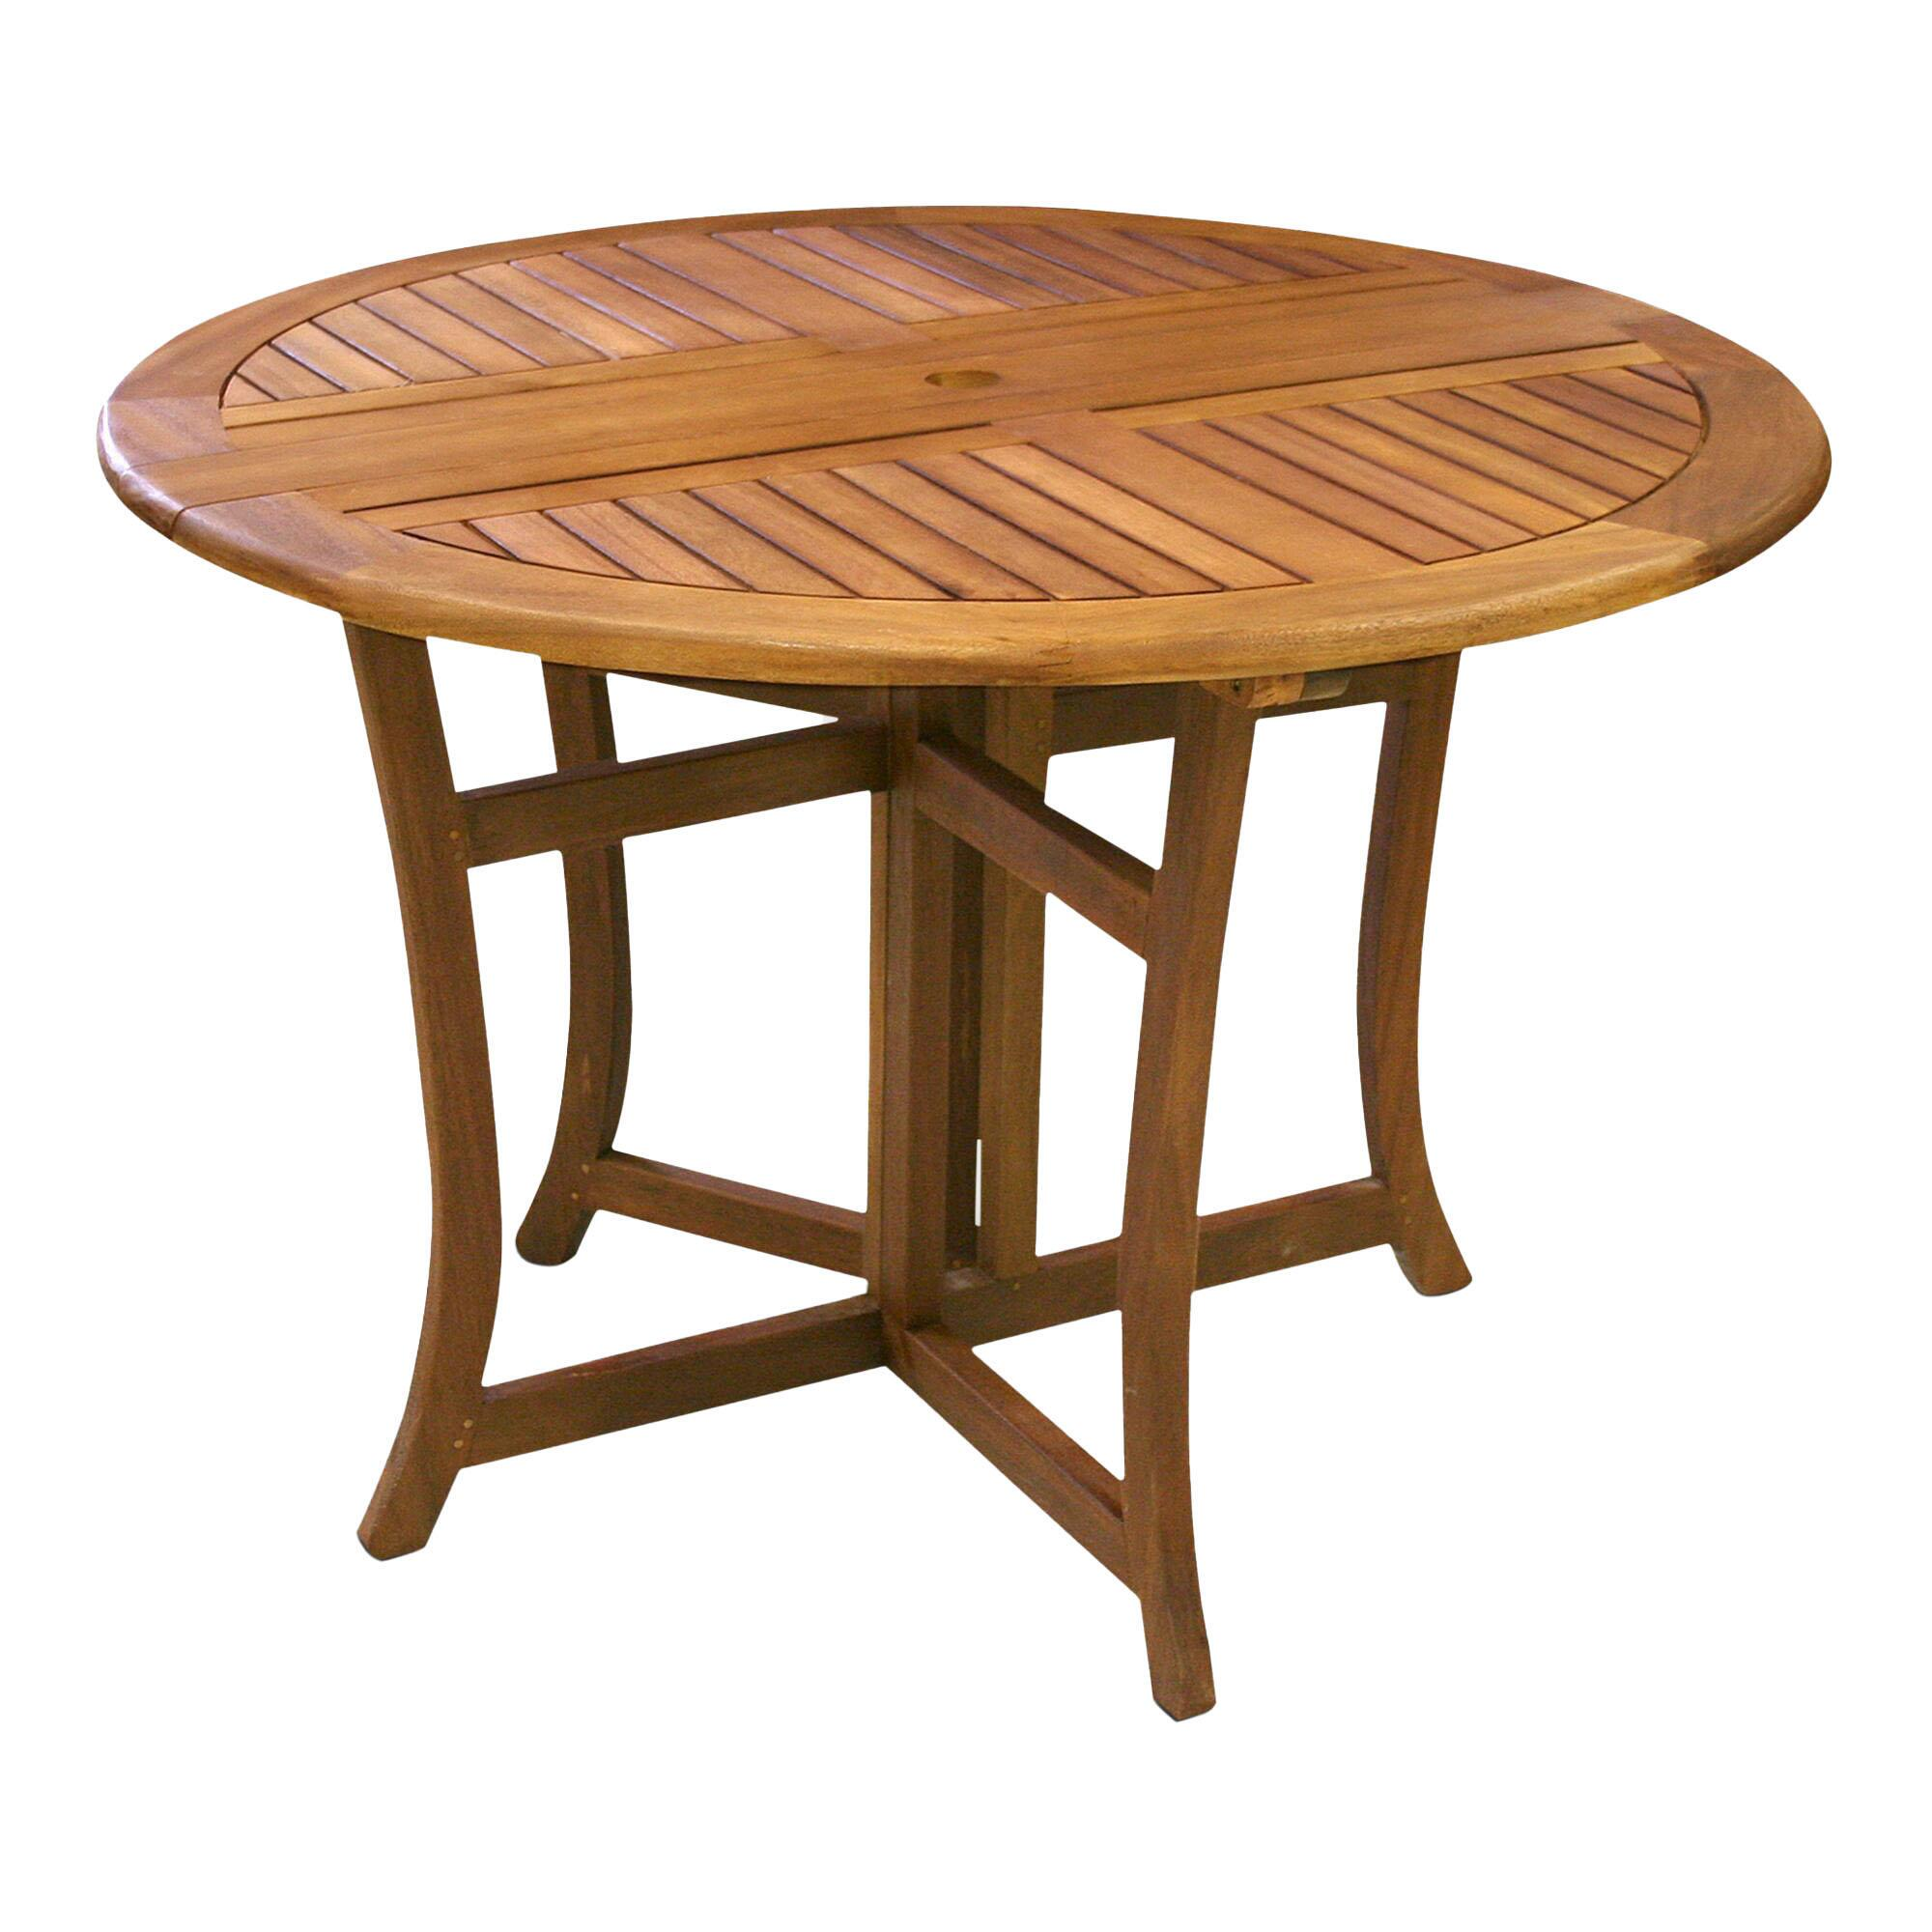 Round wood danner folding table world market for Hardwood furniture